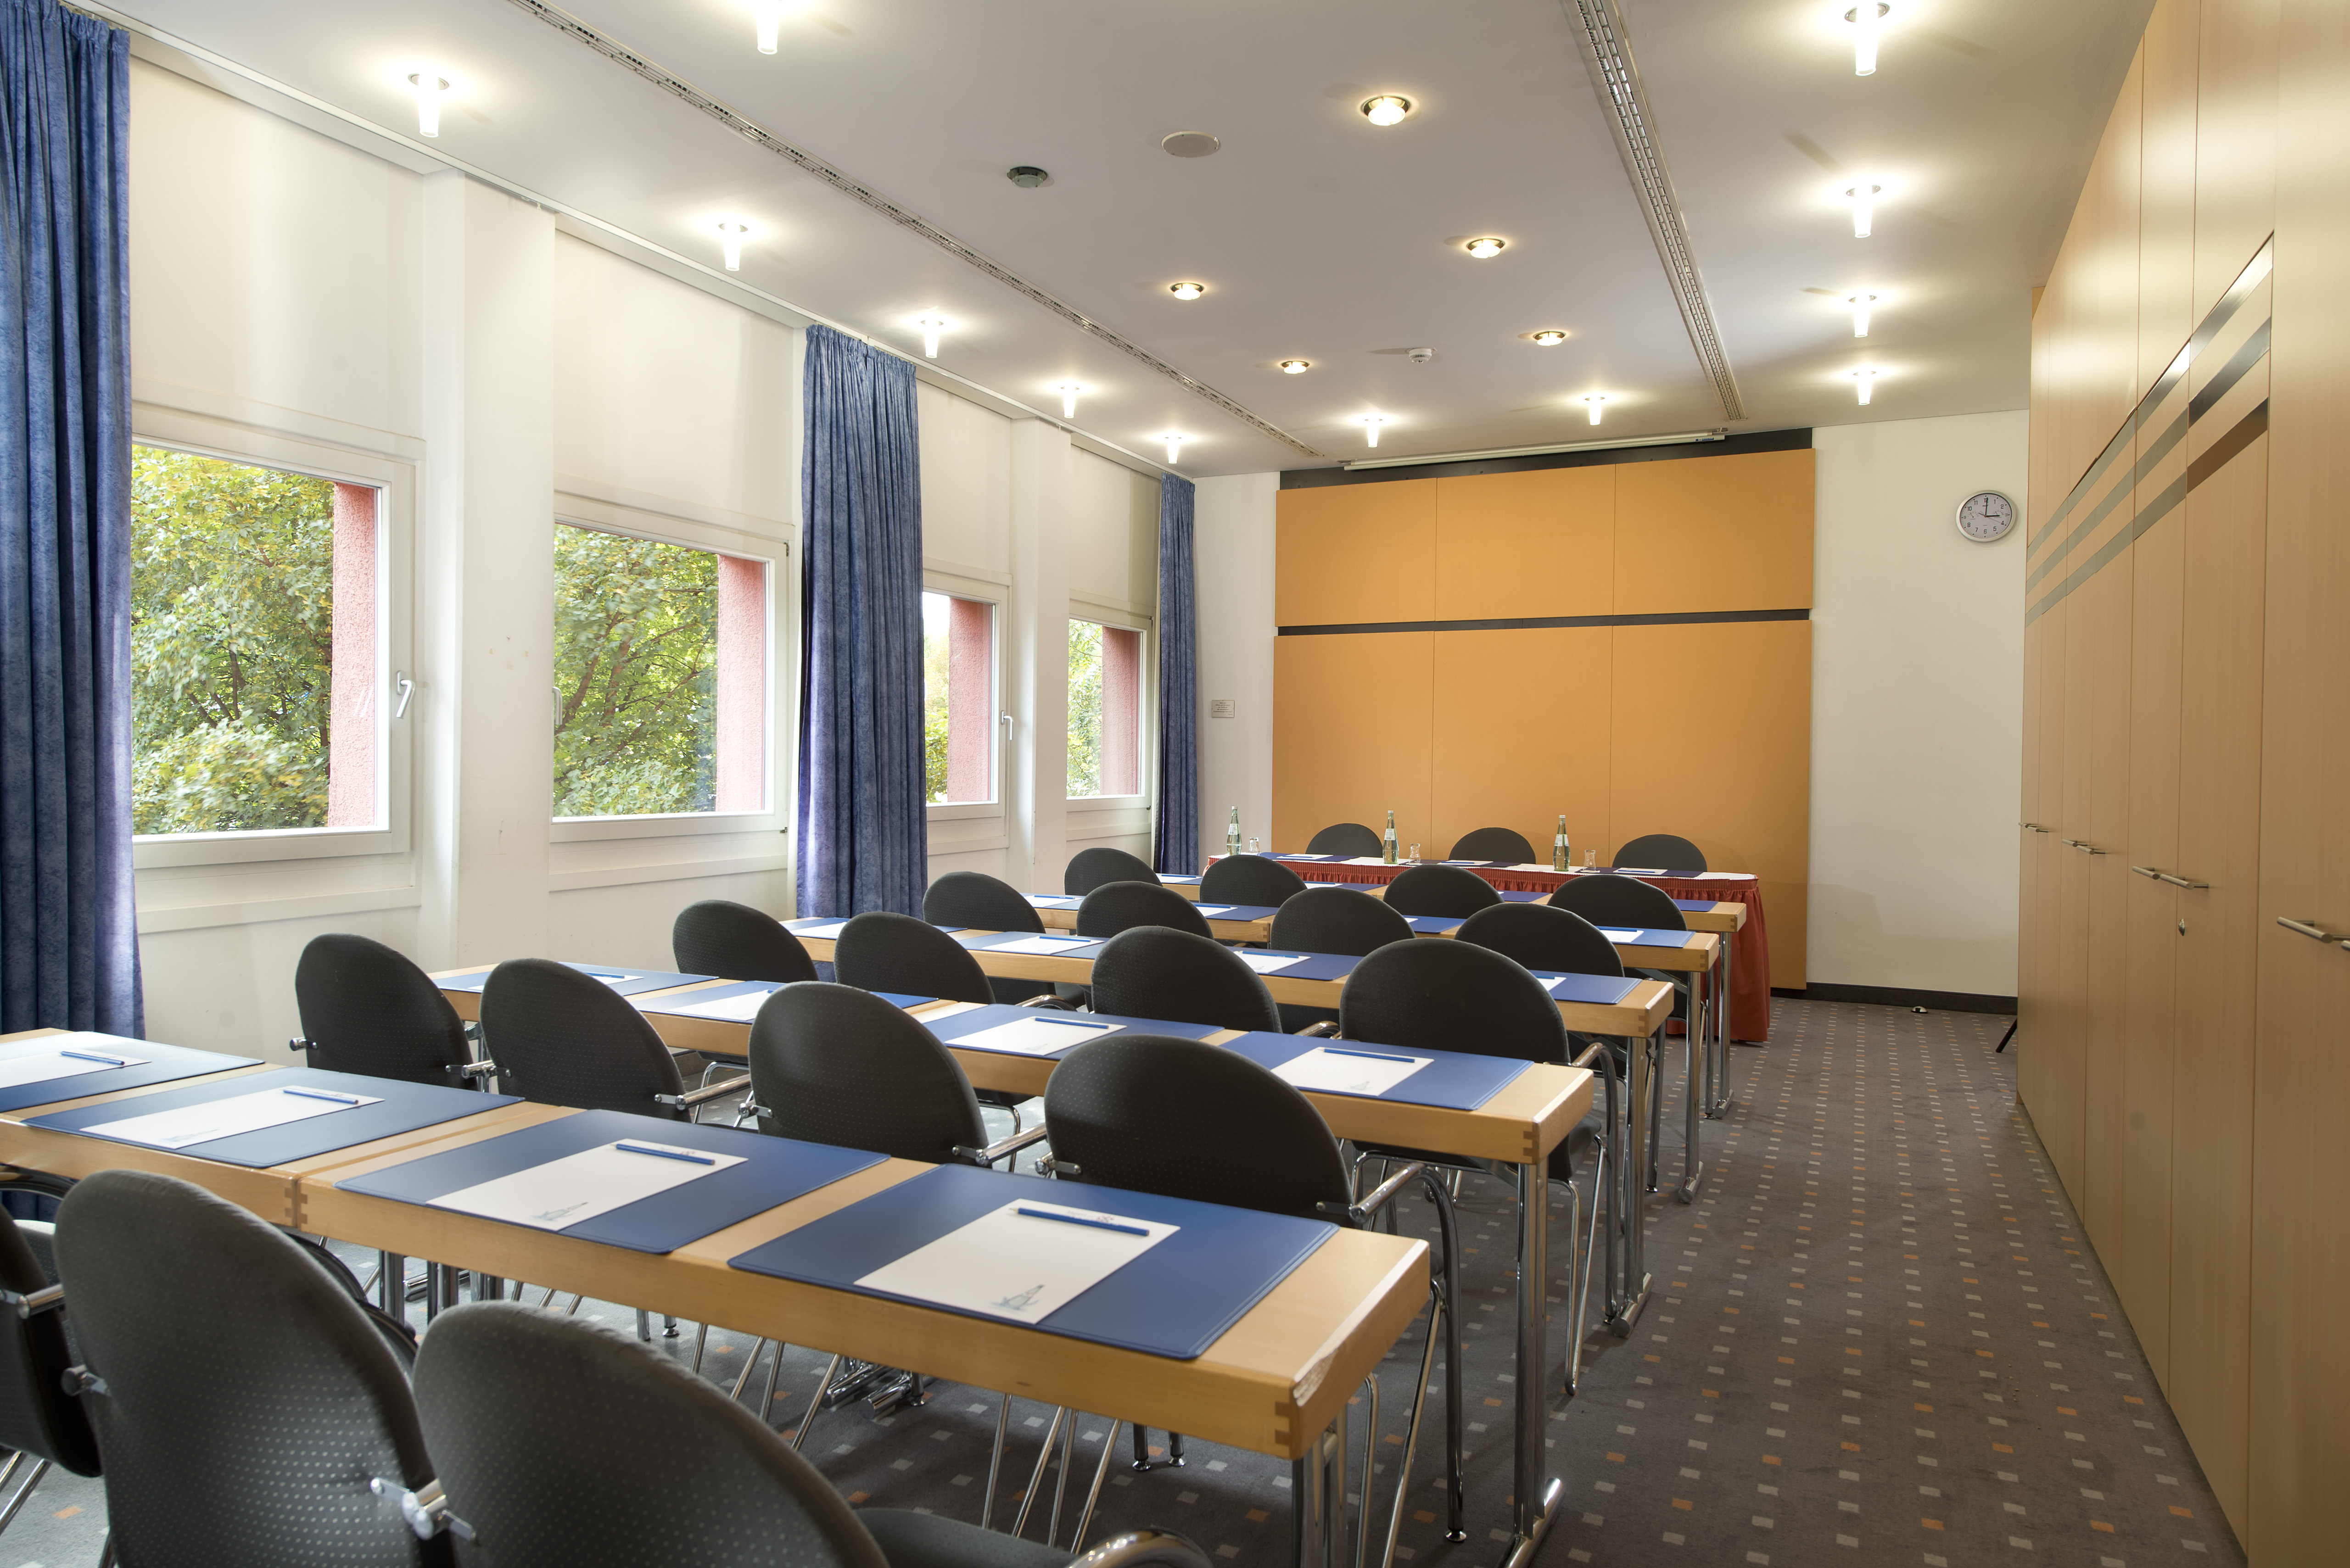 Business Hotel Halle - Rooms for Meetings, Conferences & Events ...